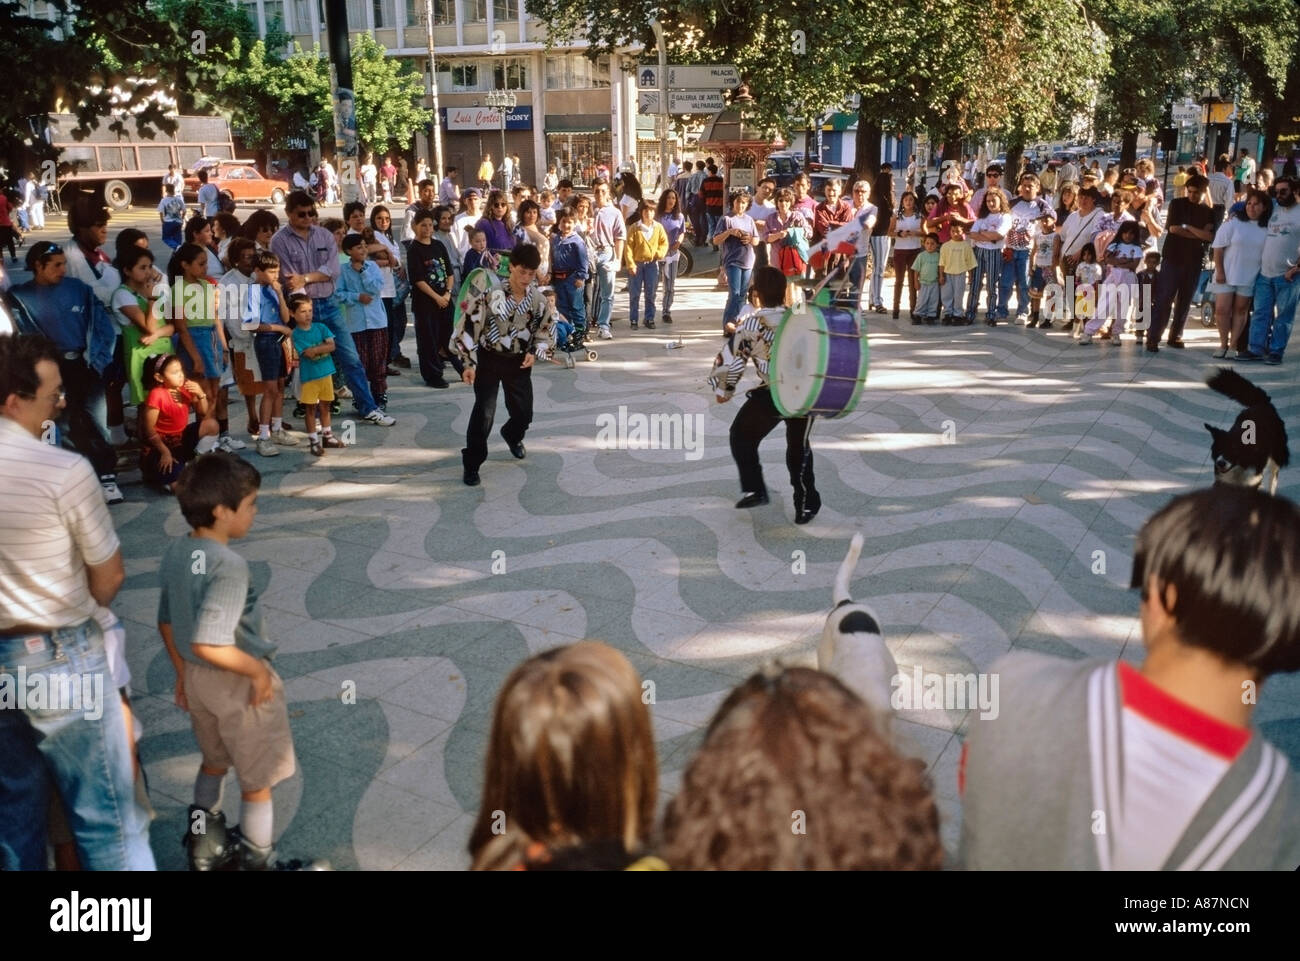 Native Chilean street performers entertain spectators with dancing and bass drums in Parque Italia Valparaíso - Stock Image